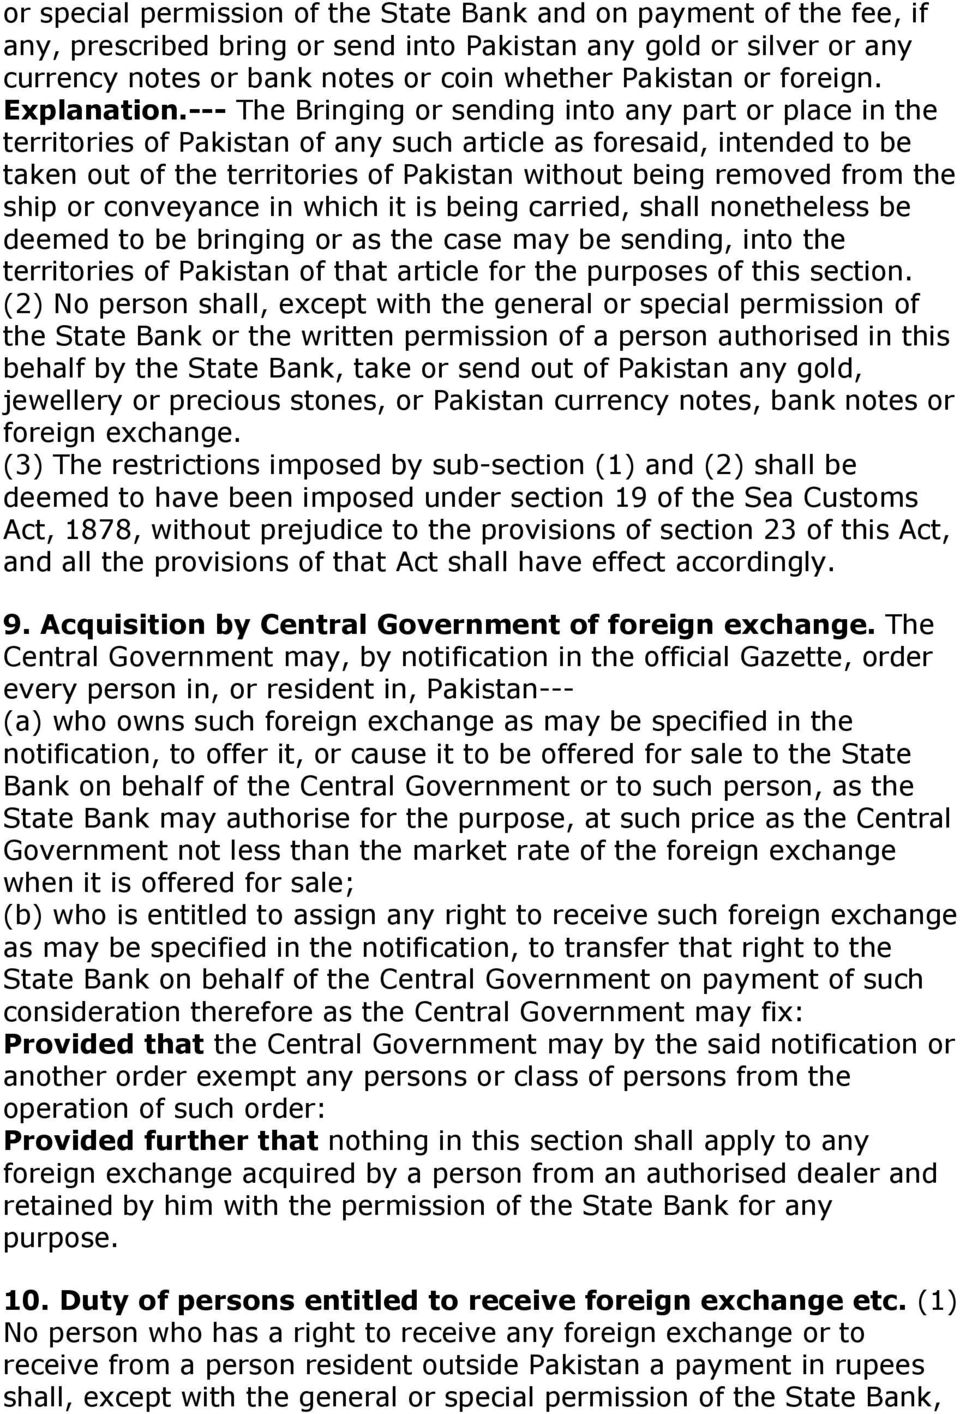 --- The Bringing or sending into any part or place in the territories of Pakistan of any such article as foresaid, intended to be taken out of the territories of Pakistan without being removed from